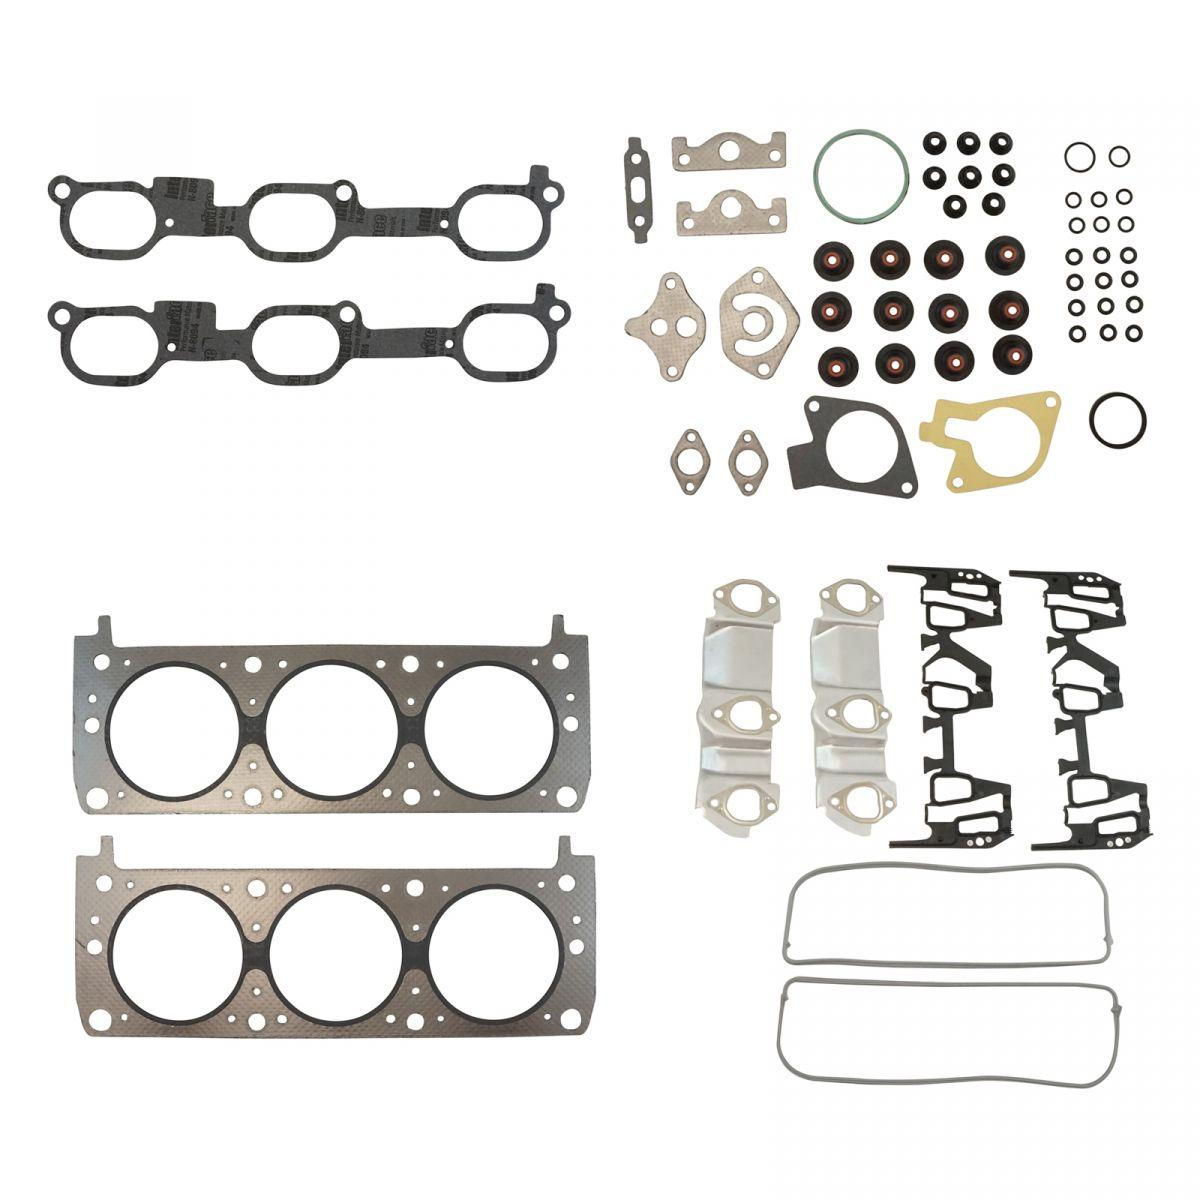 2002 Pontiac Aztek Camshaft: Engine Head Gasket Kit Set NEW For Buick Chevy Olds